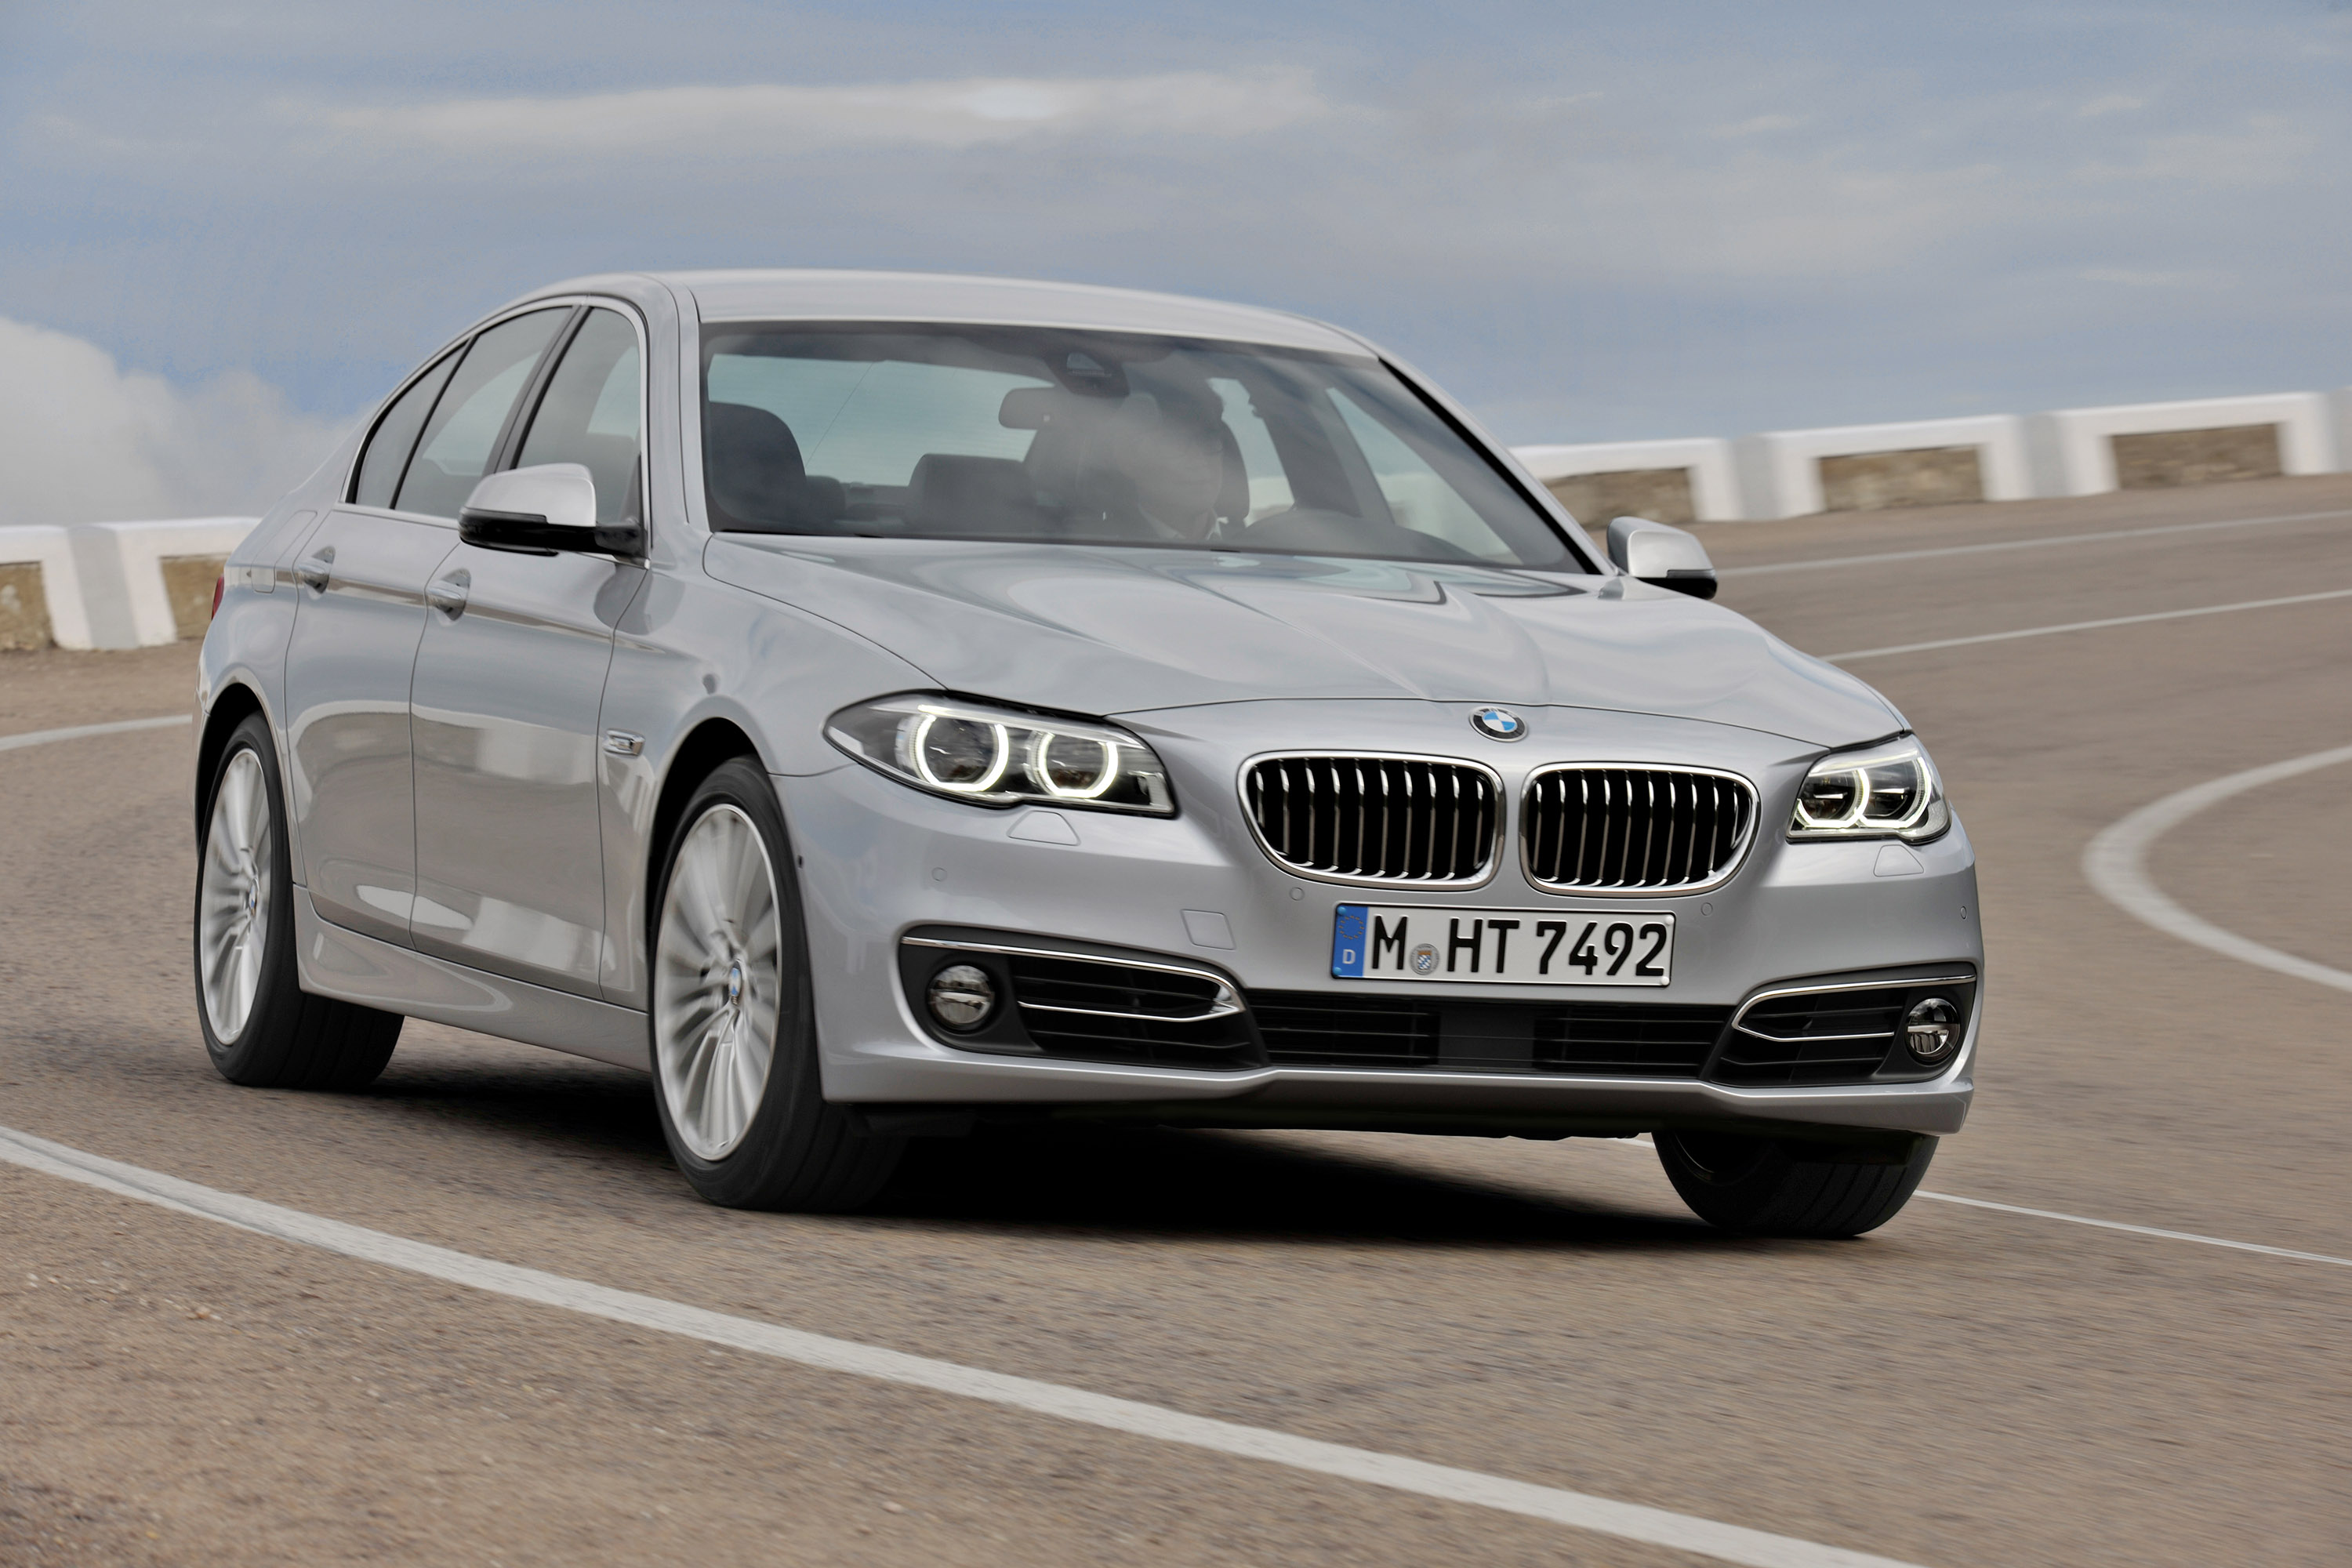 gran pricing series for specifications news five bmw auto and sedan announced sale turismo